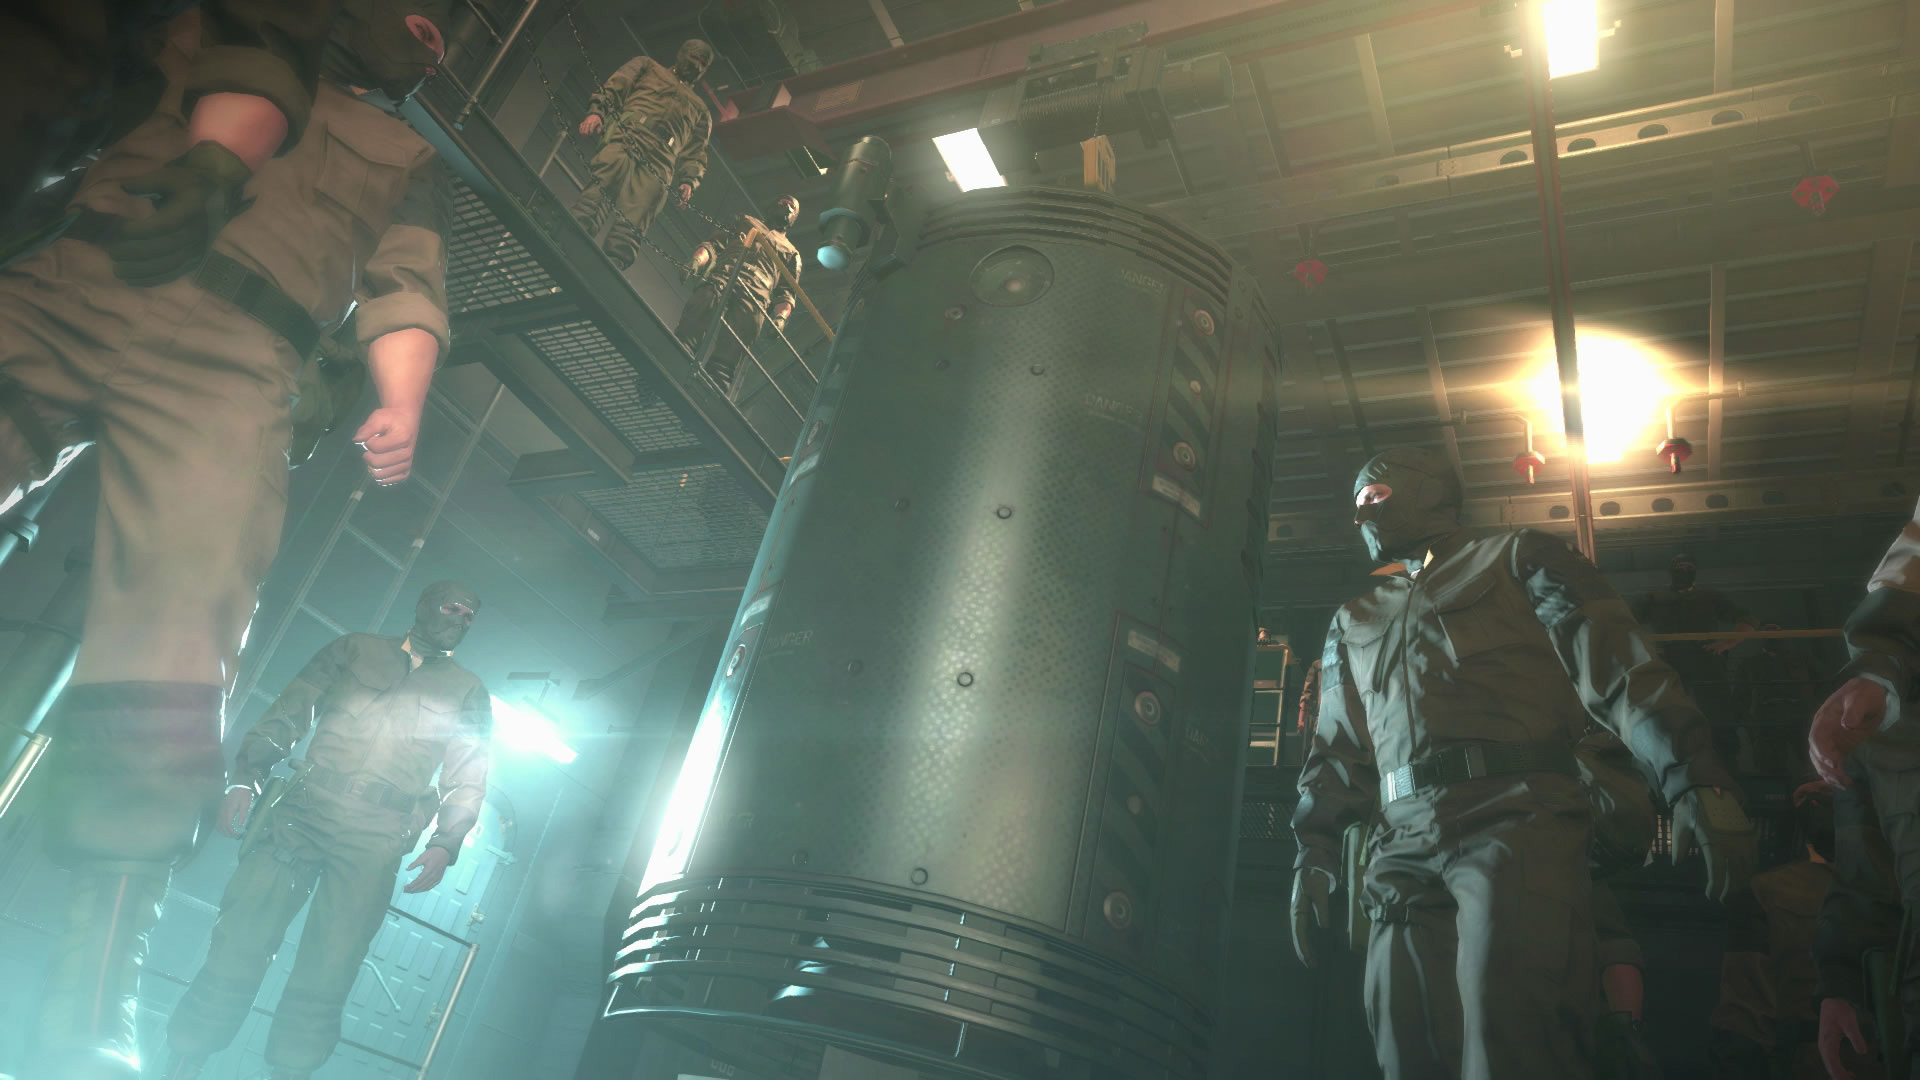 Metal-Gear-Solid-V-The-Phantom-Pain-E3-2015-Screen-Pod